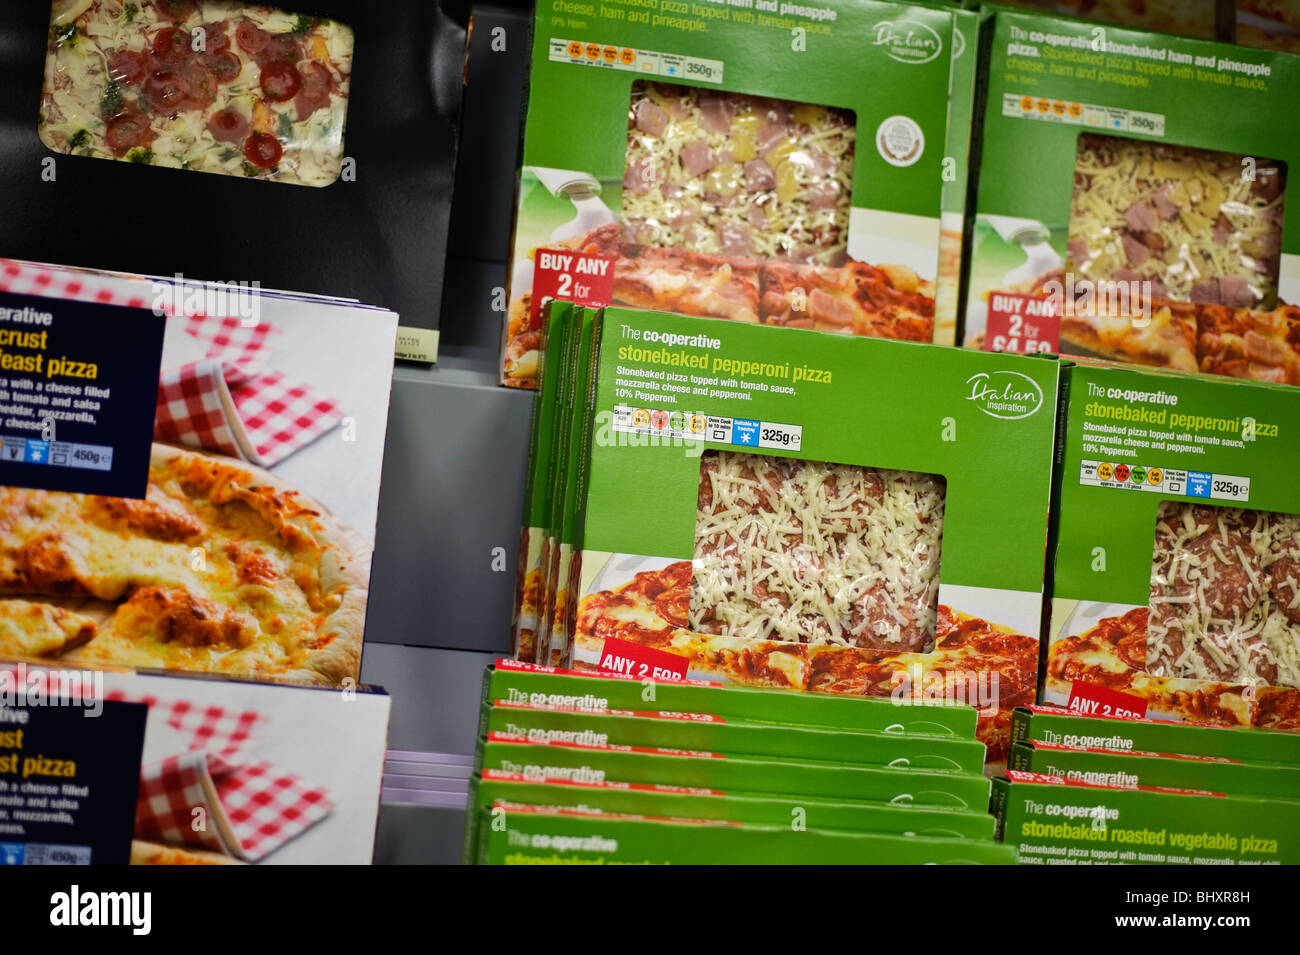 Boxes of pizza on sale on the shelves, Co-Operative Co-Op supermarket, UK - Stock Image